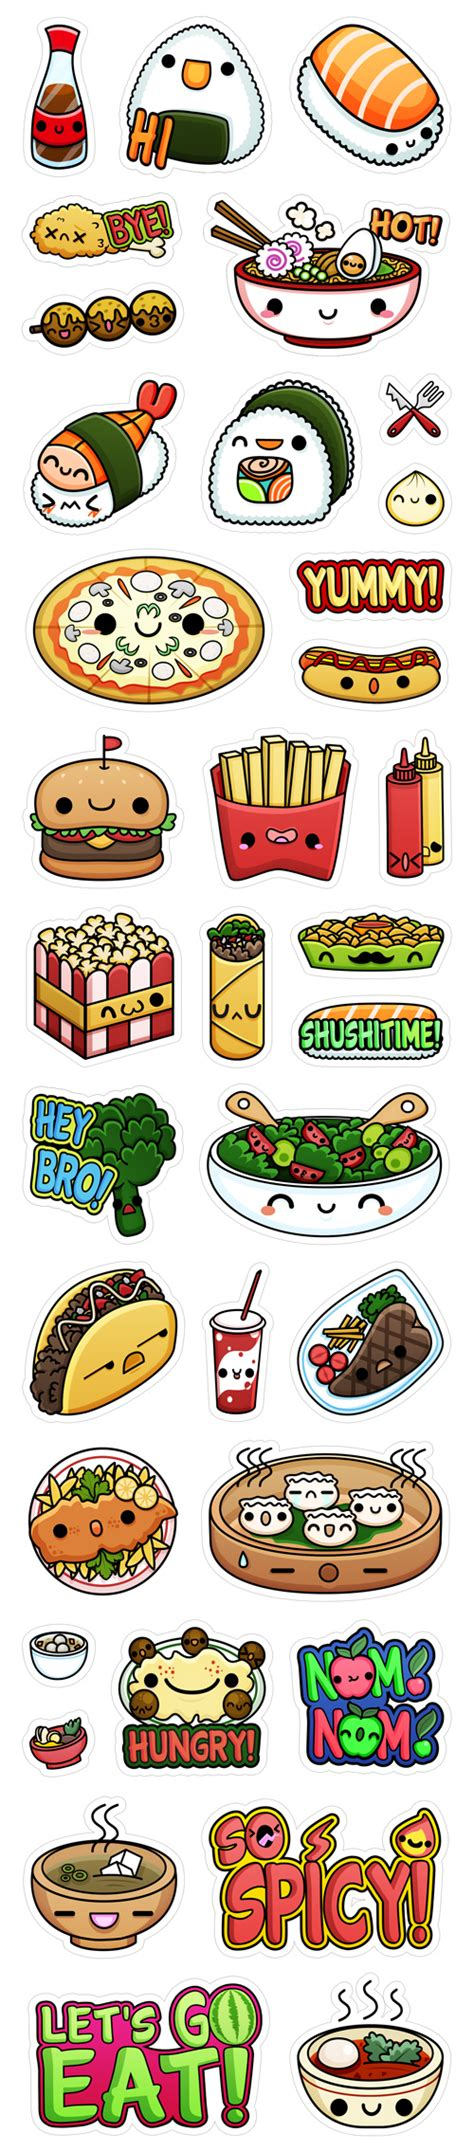 viber doodle drawing viber s kawaii food stickers squid pig ilustradores kawaii